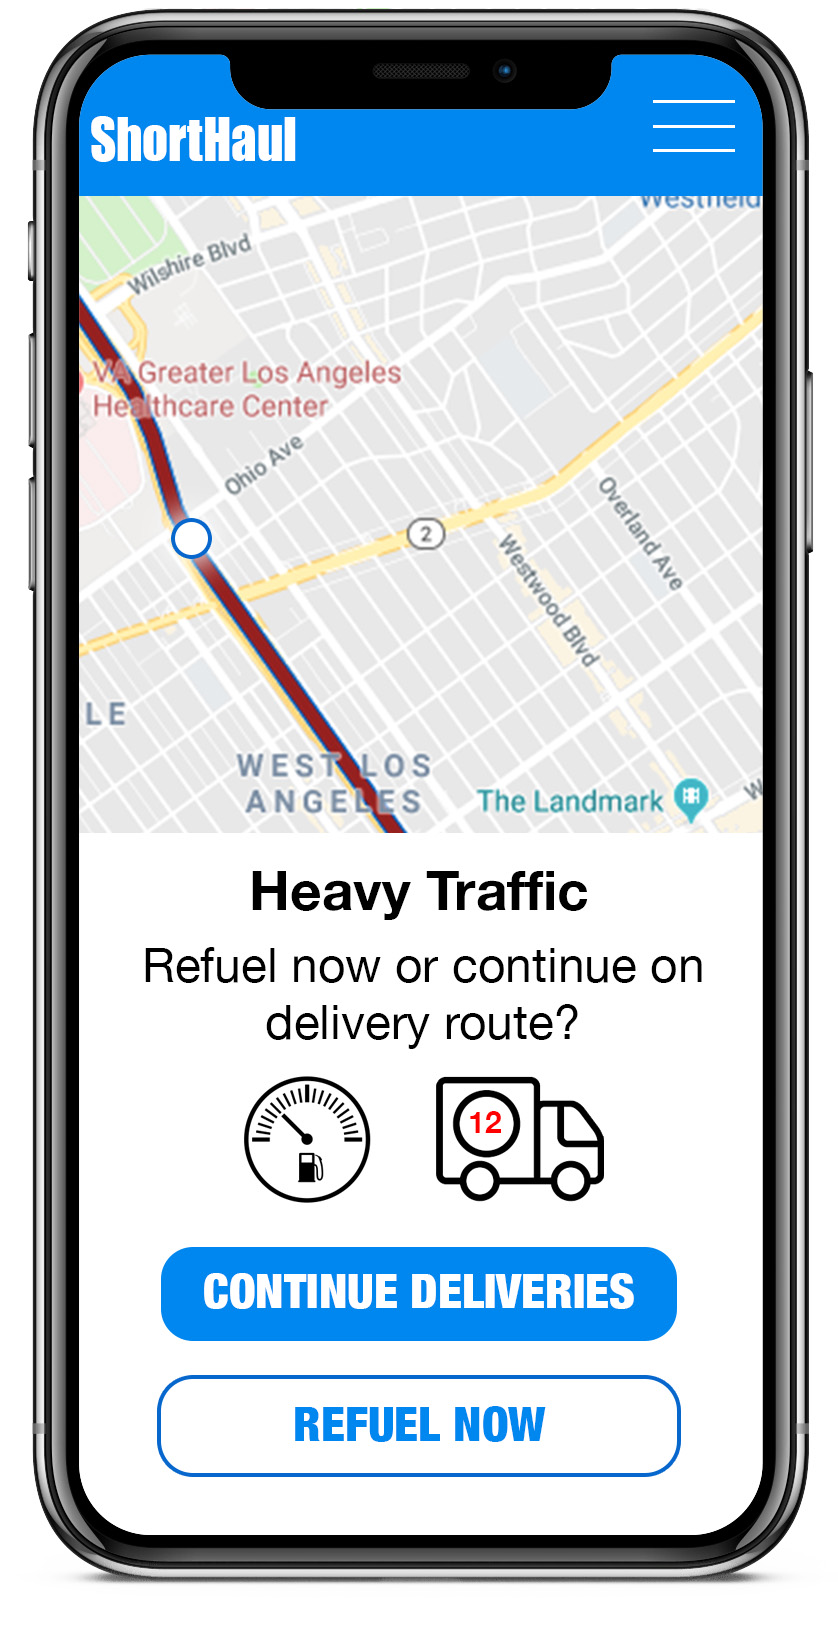 headline: Heavy Traffic           body: Refuel now or continue on delivery route?           buttons: CONTINUE DELIVERIES, REFUEL NOW